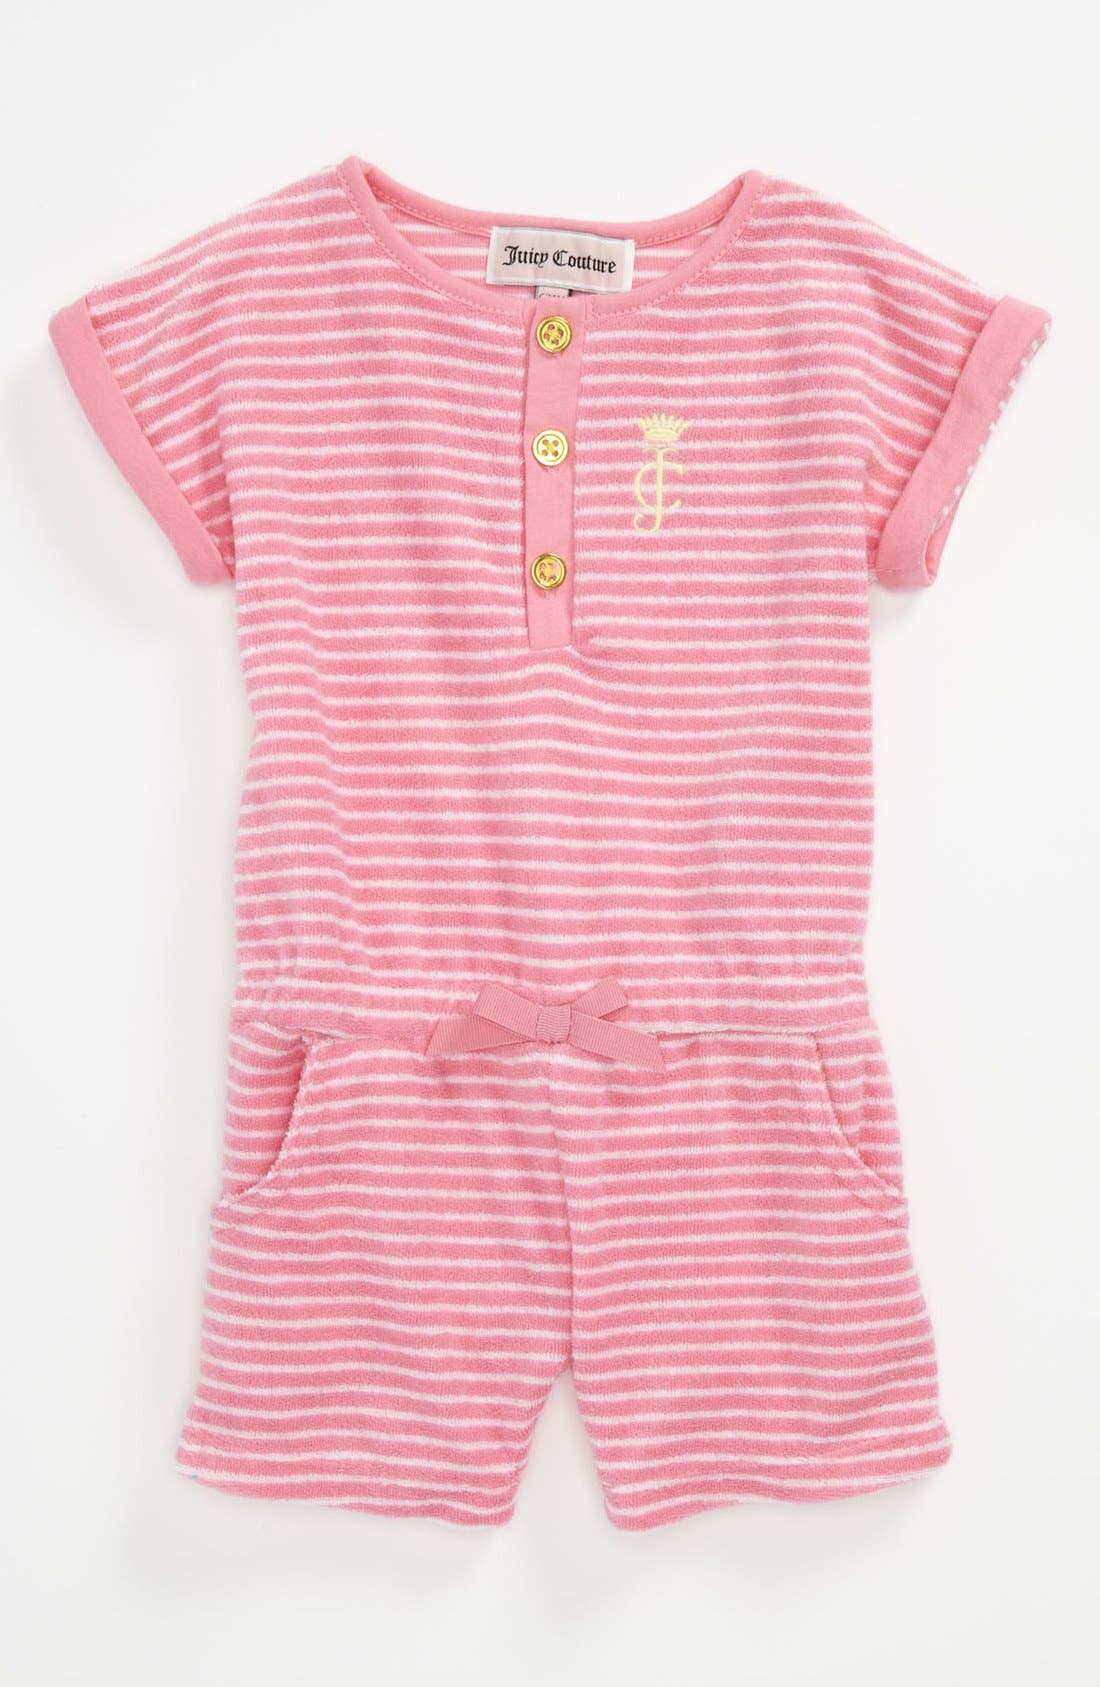 Alternate Image 1 Selected - Juicy Couture Terry Cloth Coveralls (Baby)